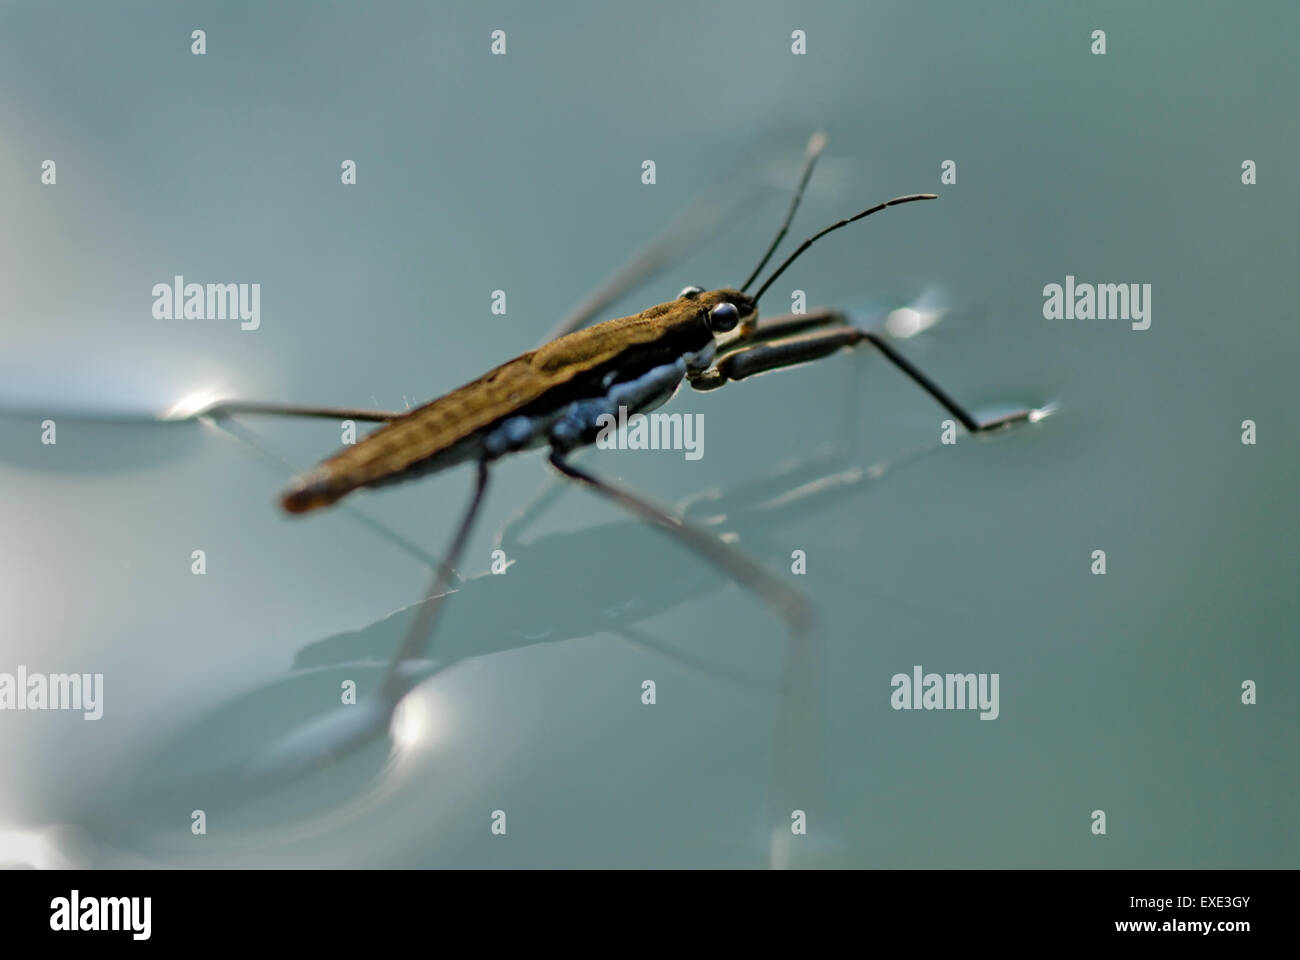 Water strider, Gerris remigis, using surface tension to walk on water - Stock Image